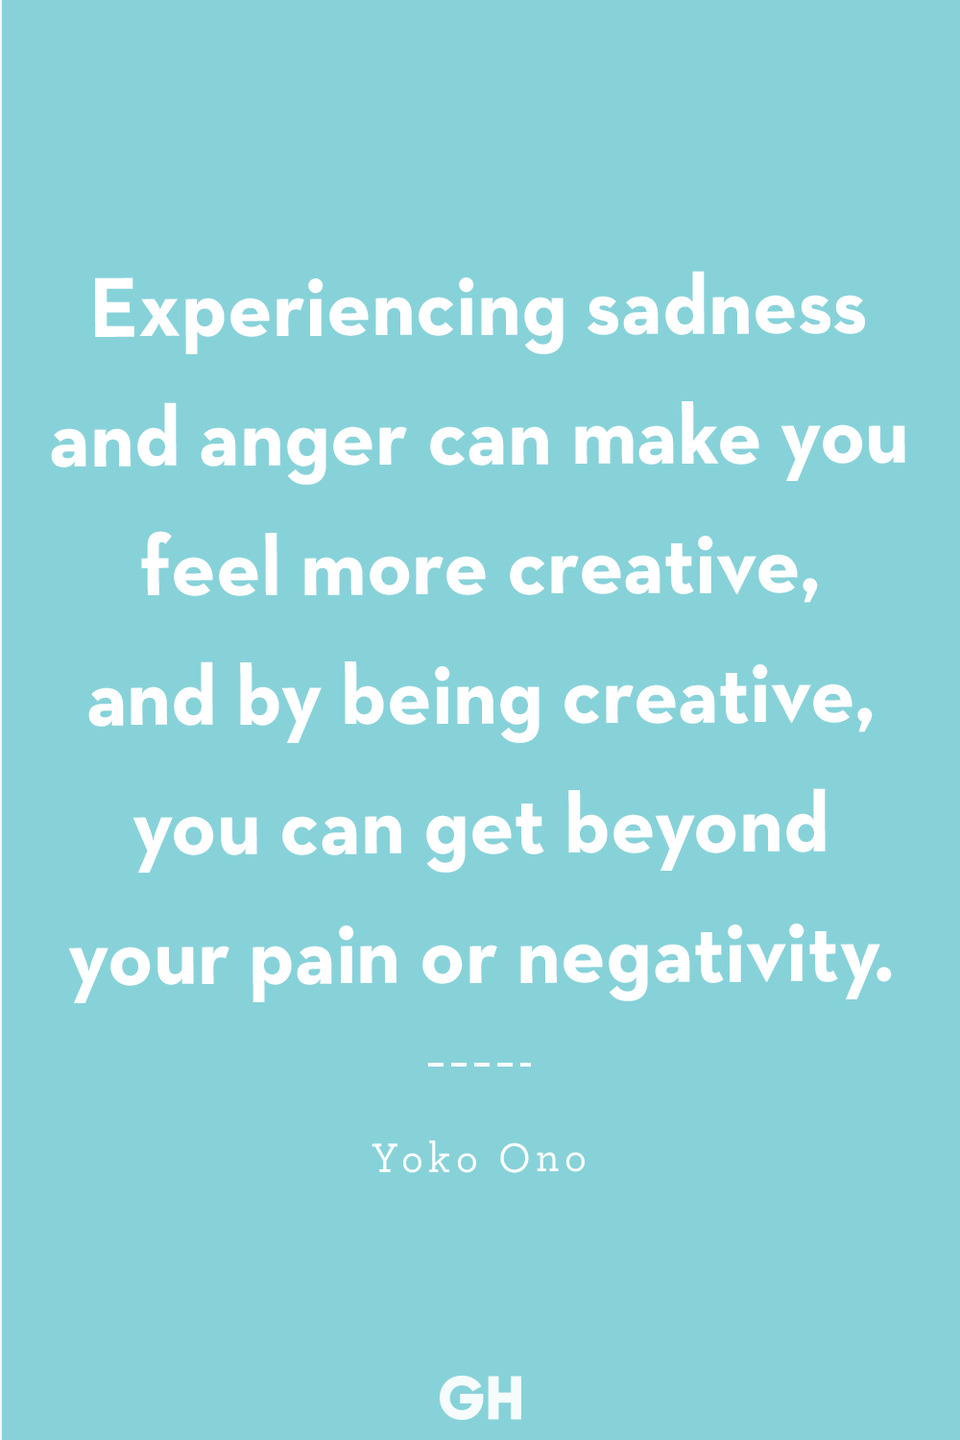 <p>Experiencing sadness and anger can make you feel more creative, and by being creative, you can get beyond your pain or negativity.</p>